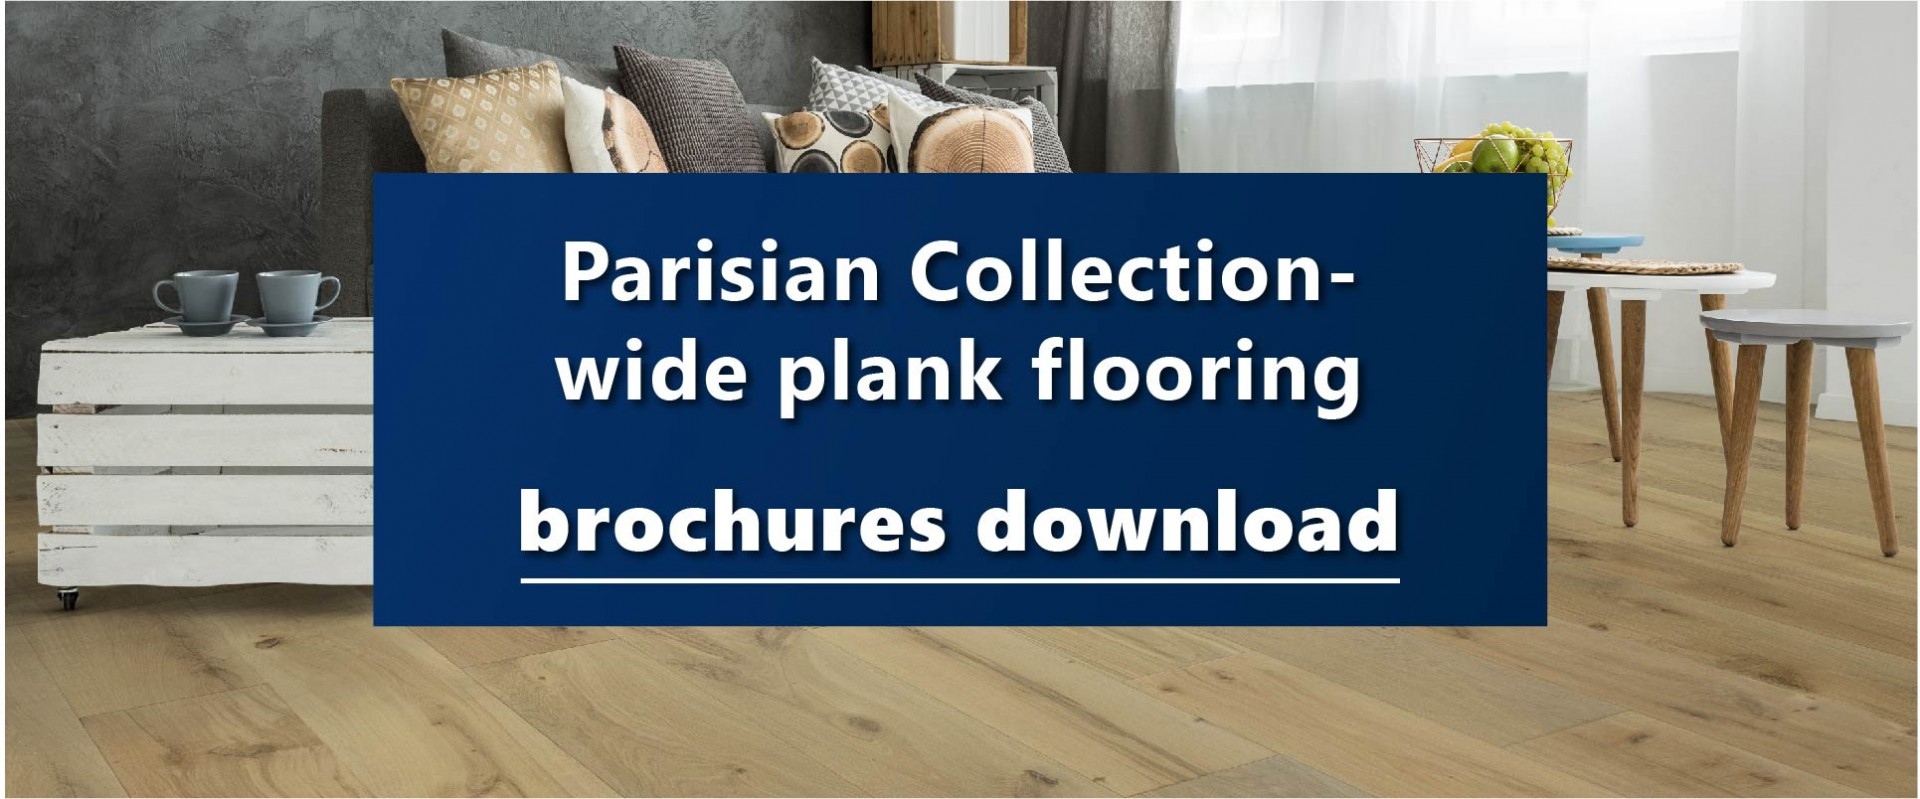 Download out Parisian Collection wide plank hardwood flooring brochure